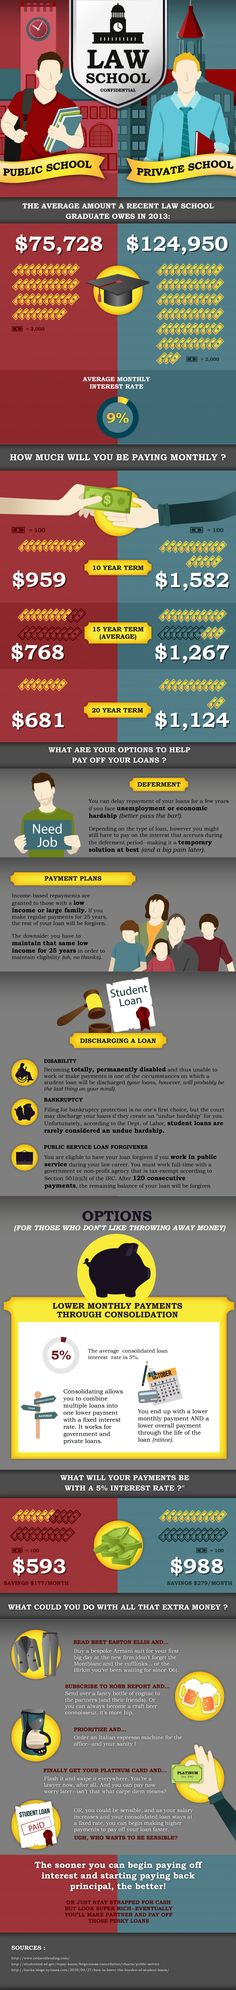 The average student loan a recent law school graduate owes in 2013